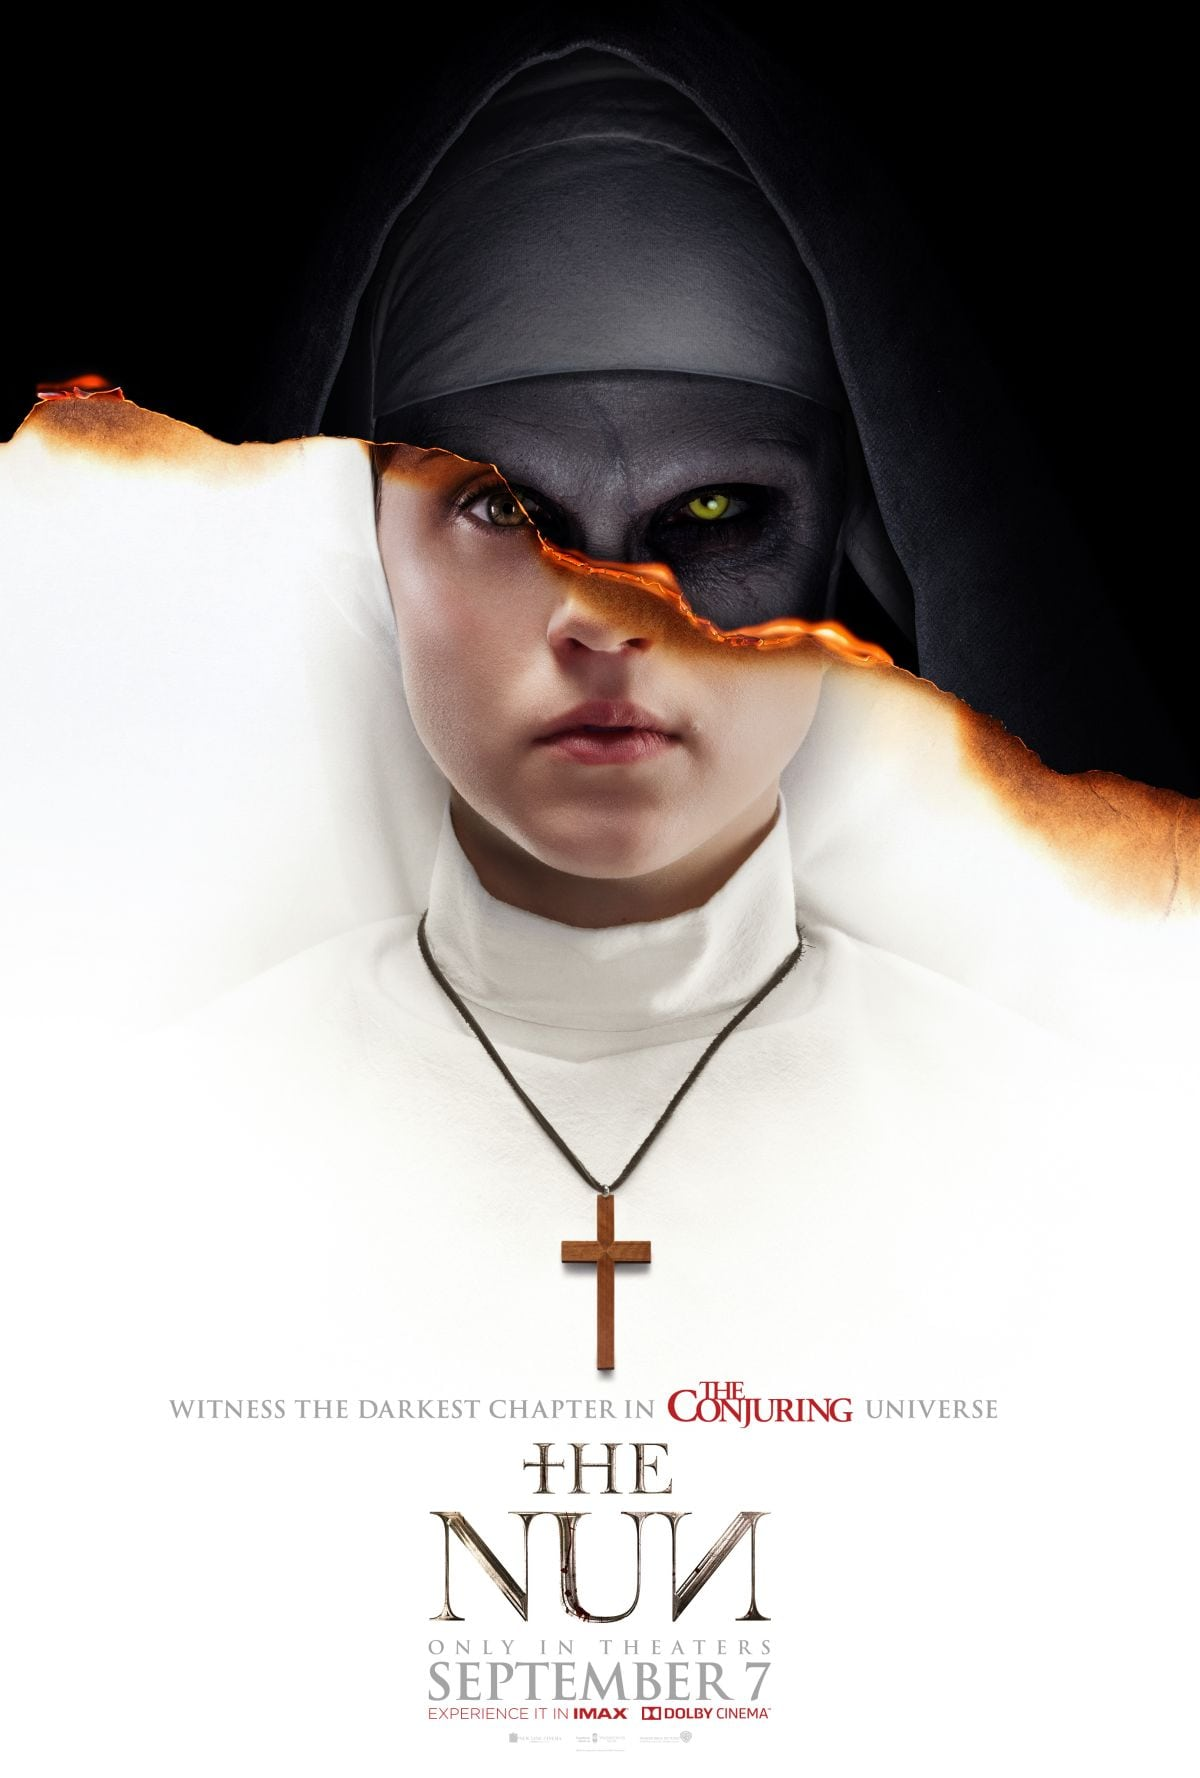 Waypoint Wednesday: The Nun @ The Waypoint